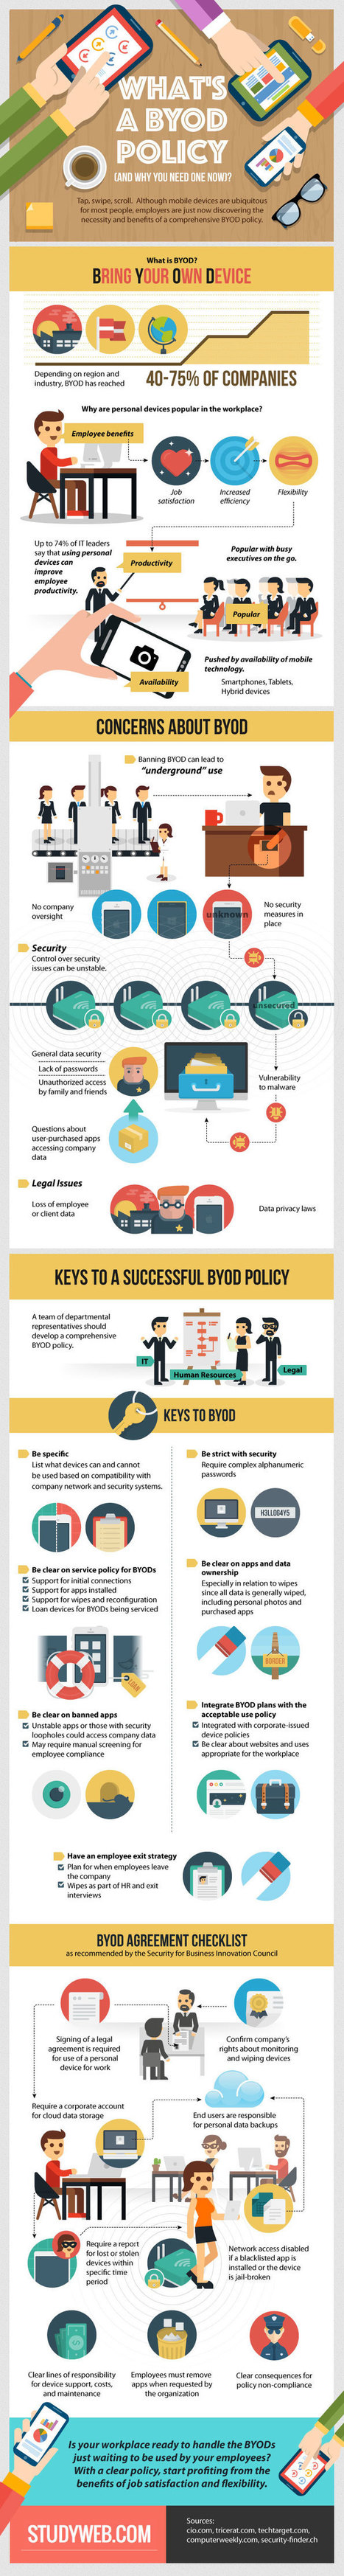 How to Establish a BYOD Policy | Mobile Technology | Scoop.it